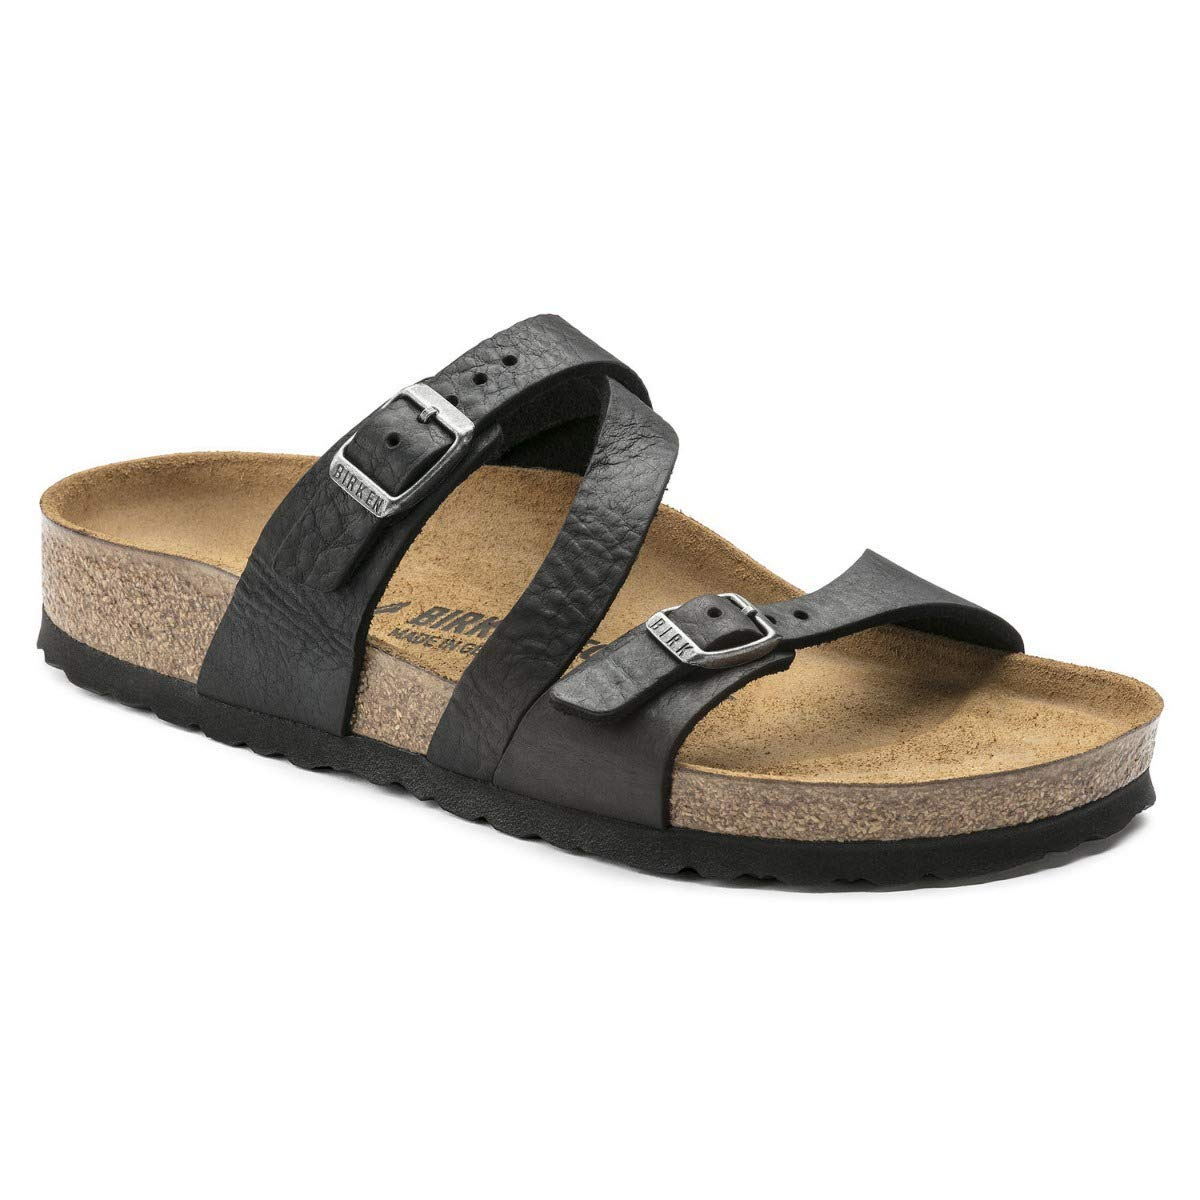 70736548f1b9 Birkenstock Womens Salina Leather Sandals  Amazon.co.uk  Shoes   Bags